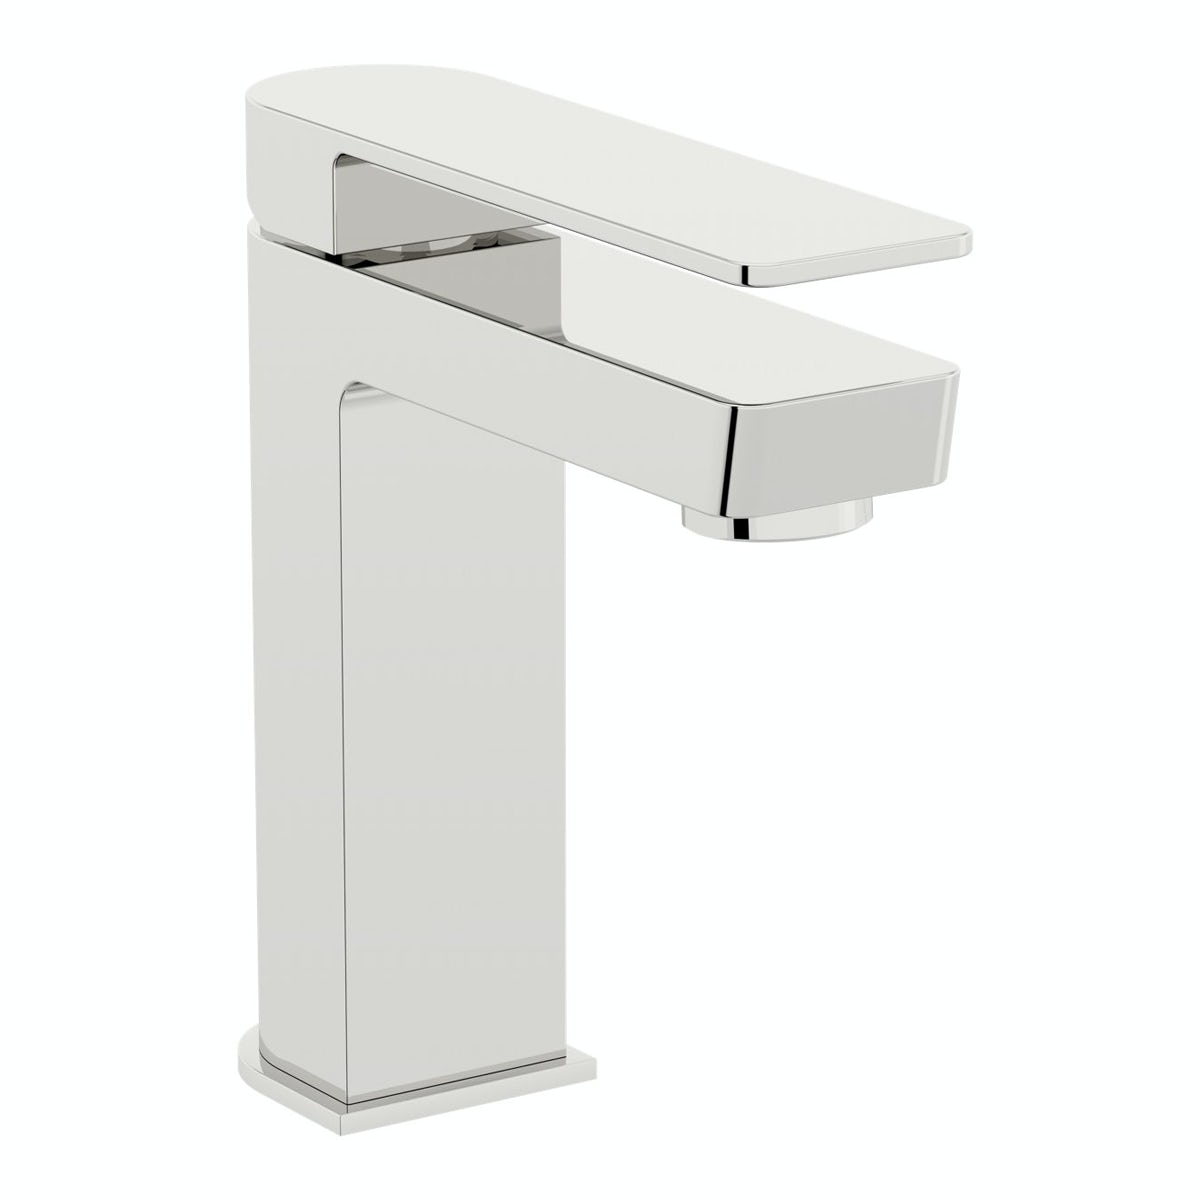 Mode Ellis basin mixer tap